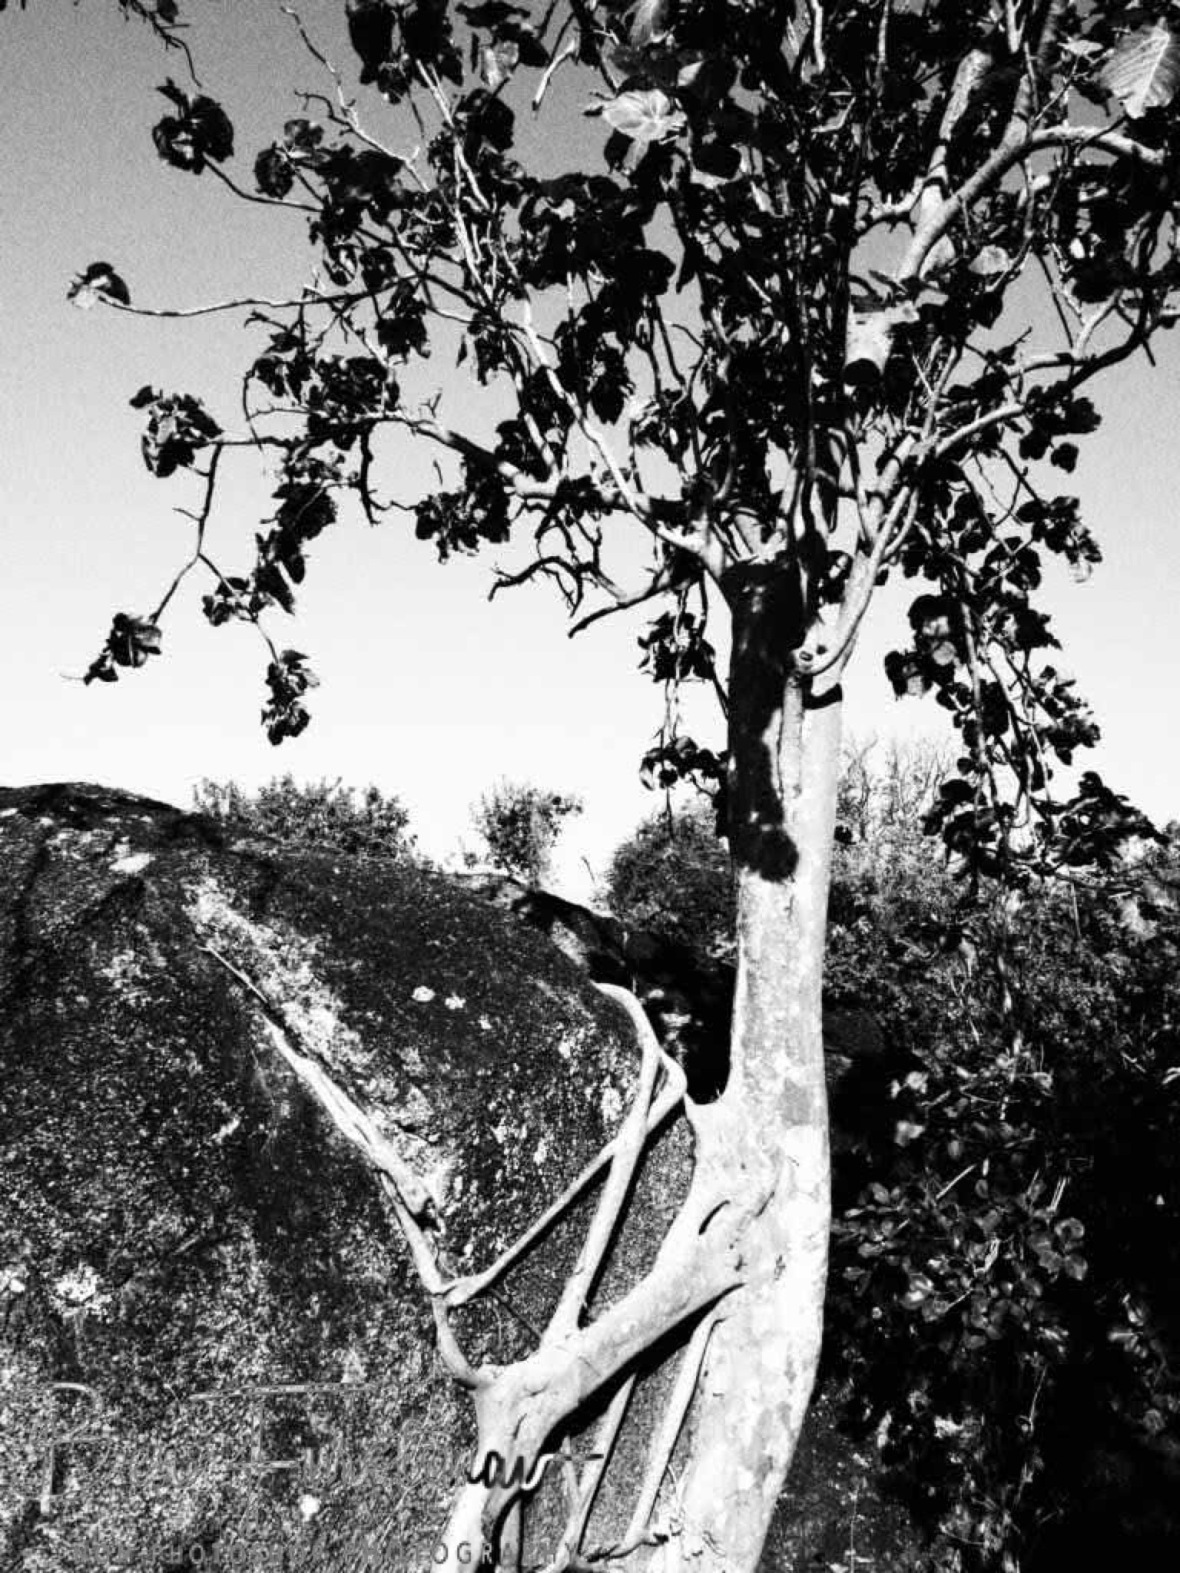 Quite astounding how trees grow on rocks at Monkey Bay, Lake Malawi, Malawi